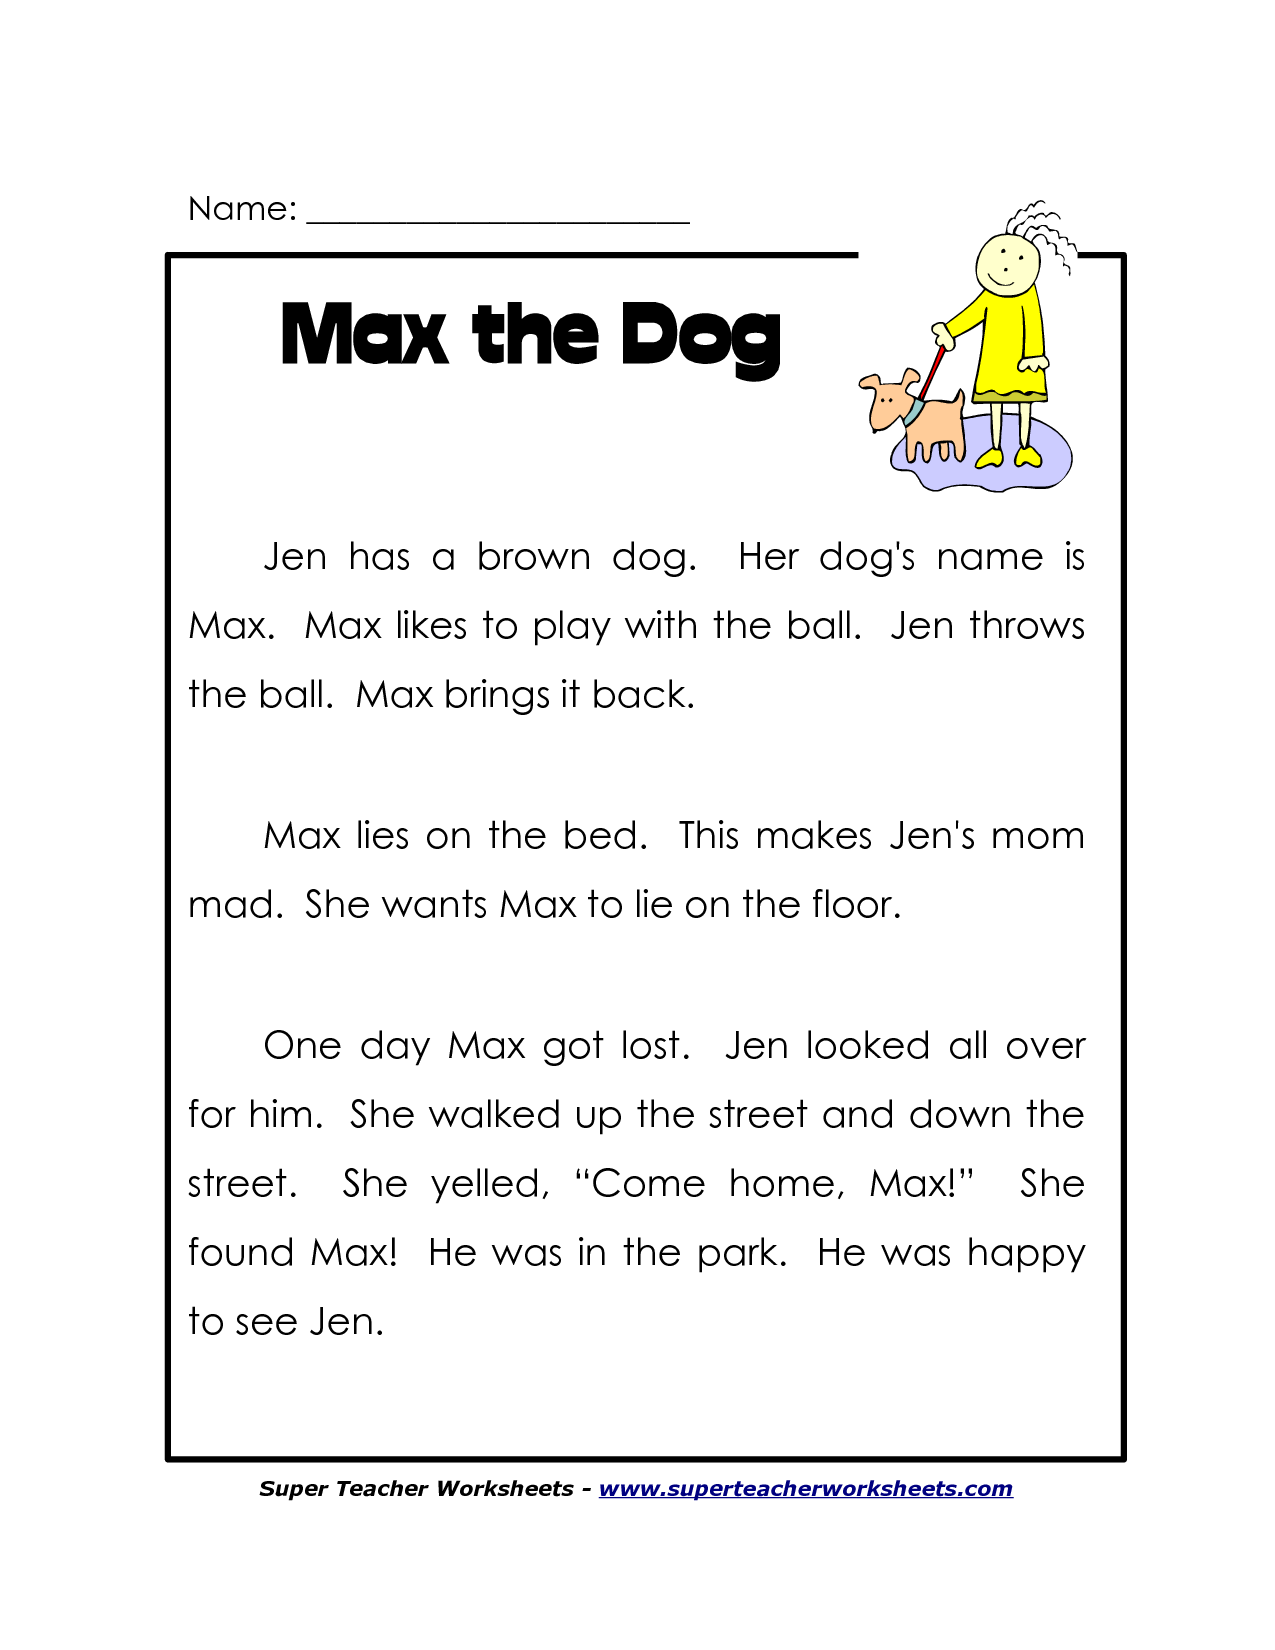 worksheet Third Grade Comprehension Worksheets Free reading comprehension worksheets for third grade free w ksheets re d g prehensi 1st gr de